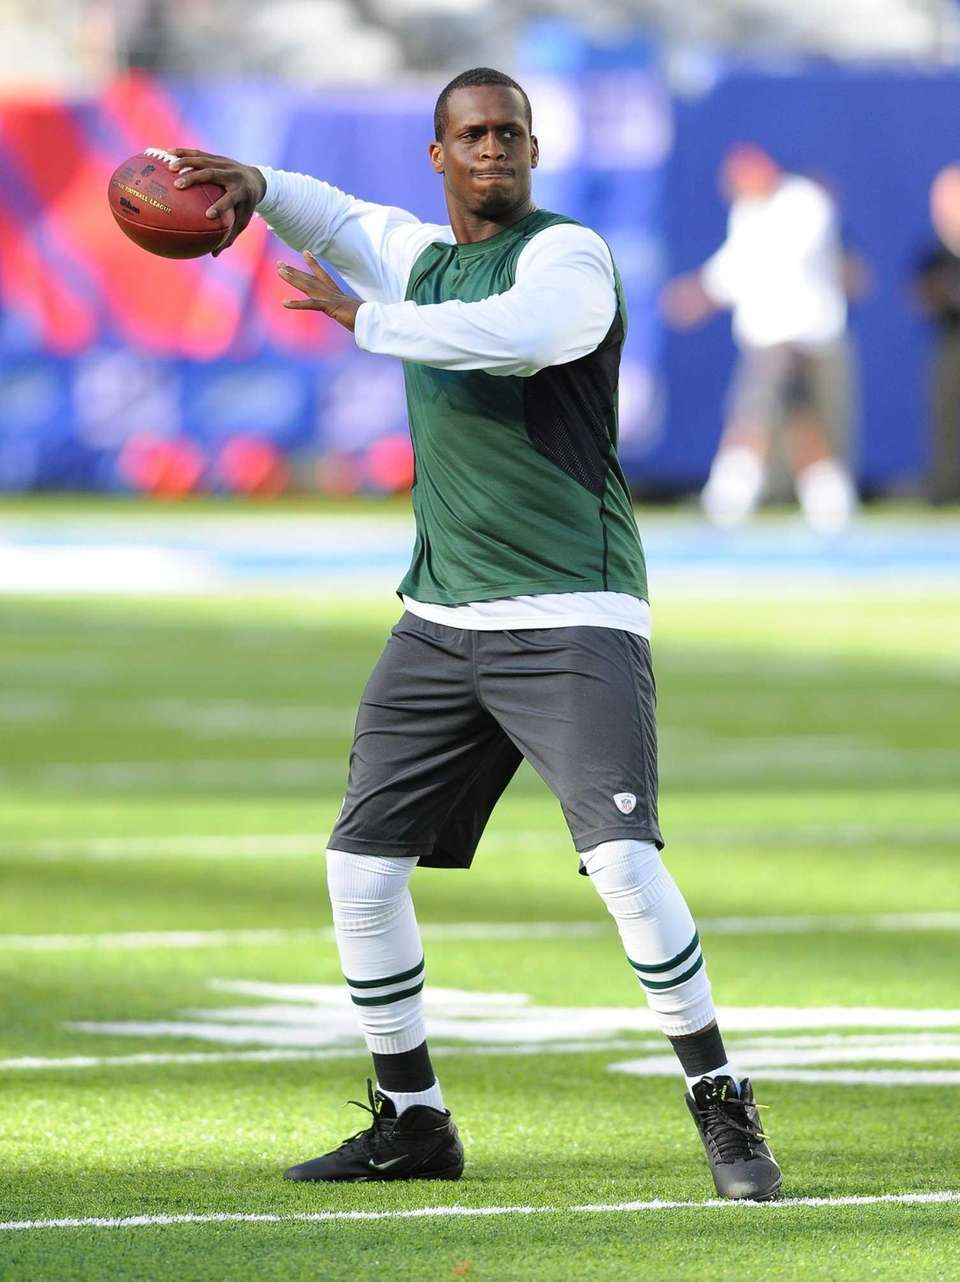 Jets quarterback Geno Smith (7) during pregame of